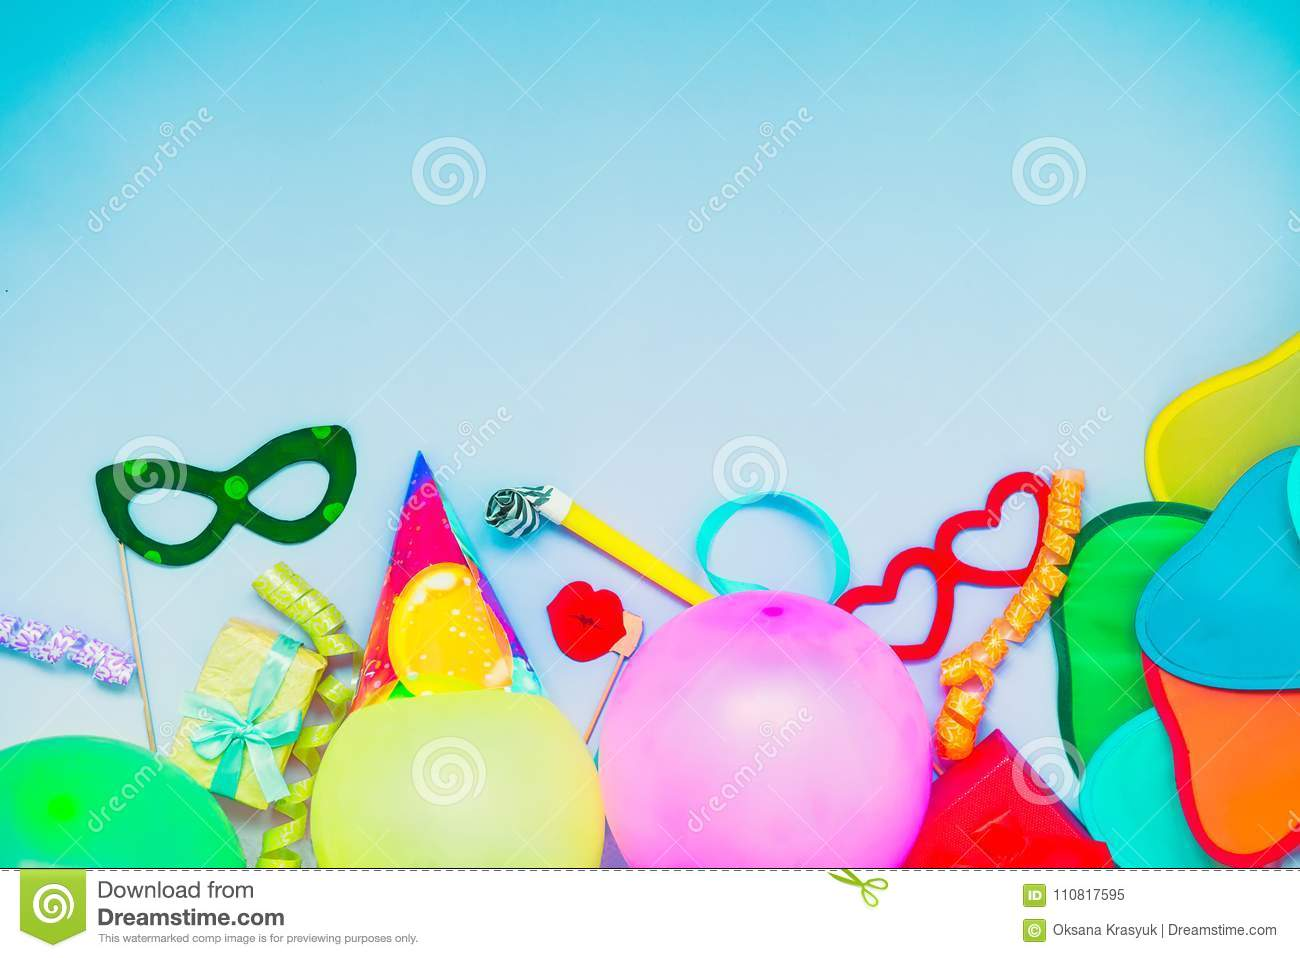 Light blue Festive background with party tools and decoration - baloons, funny carnival masks, festive tinsel. Happy birthday gree